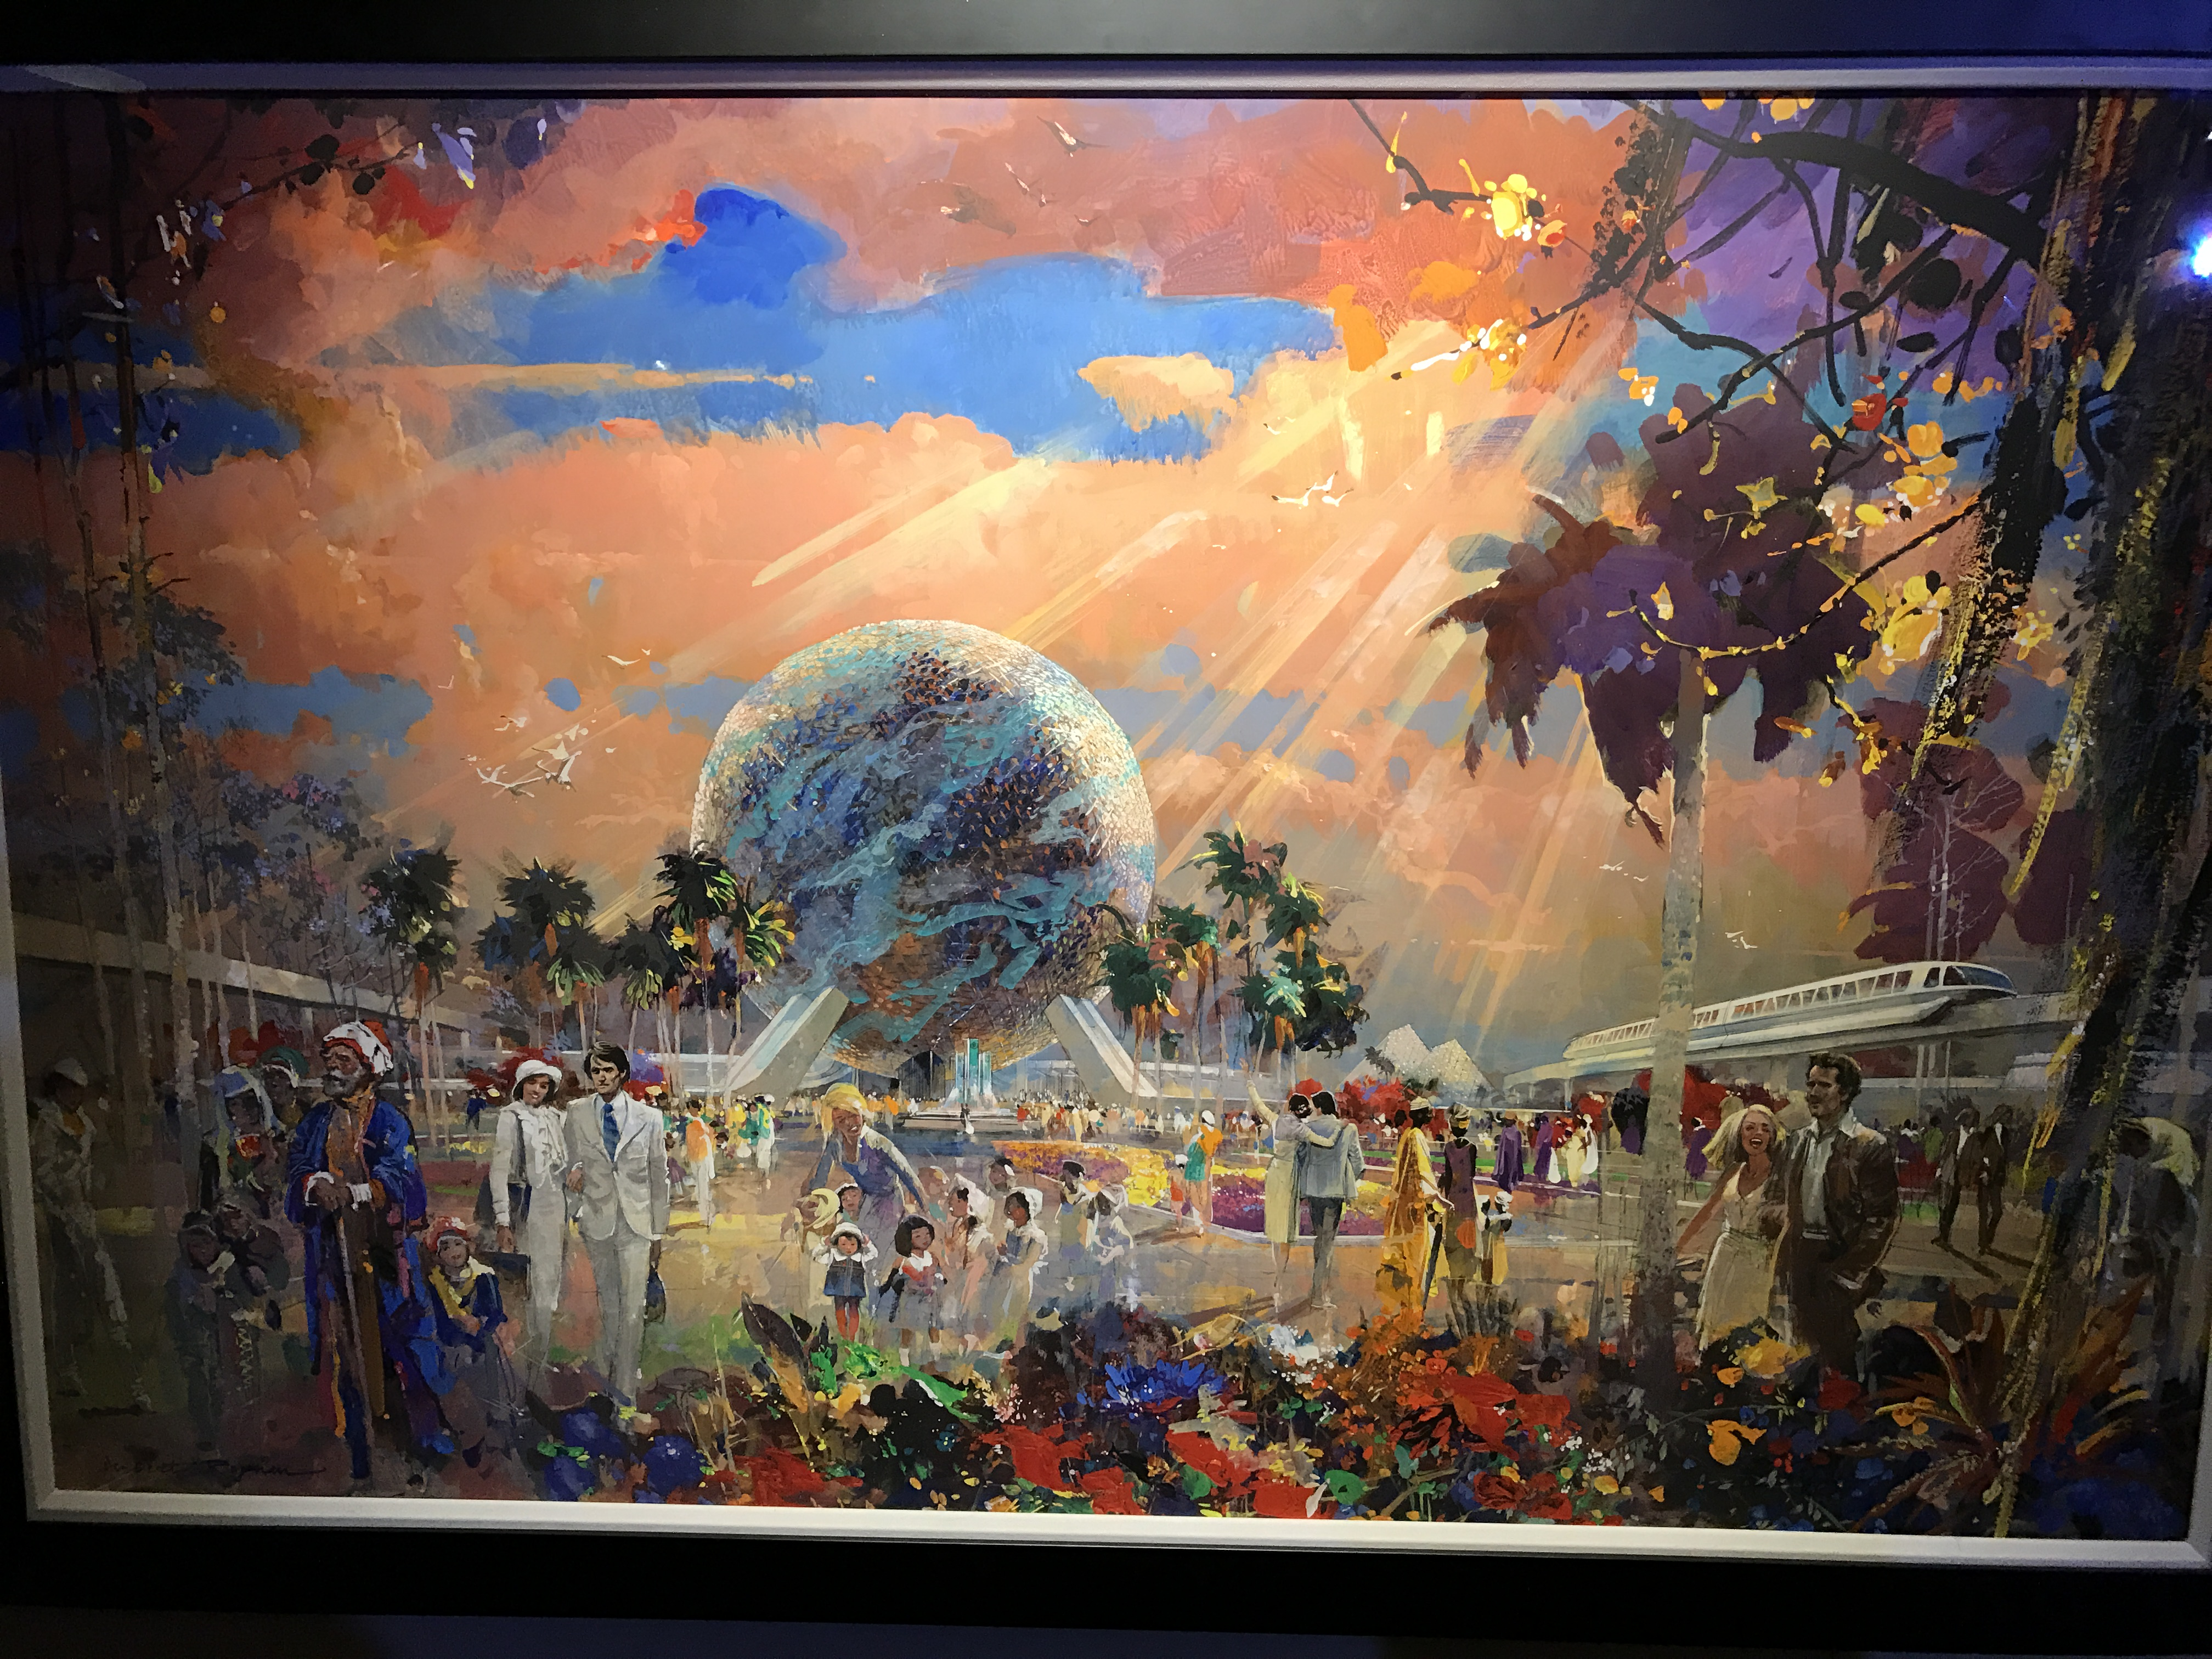 Another take on the Epcot entrance plaza.